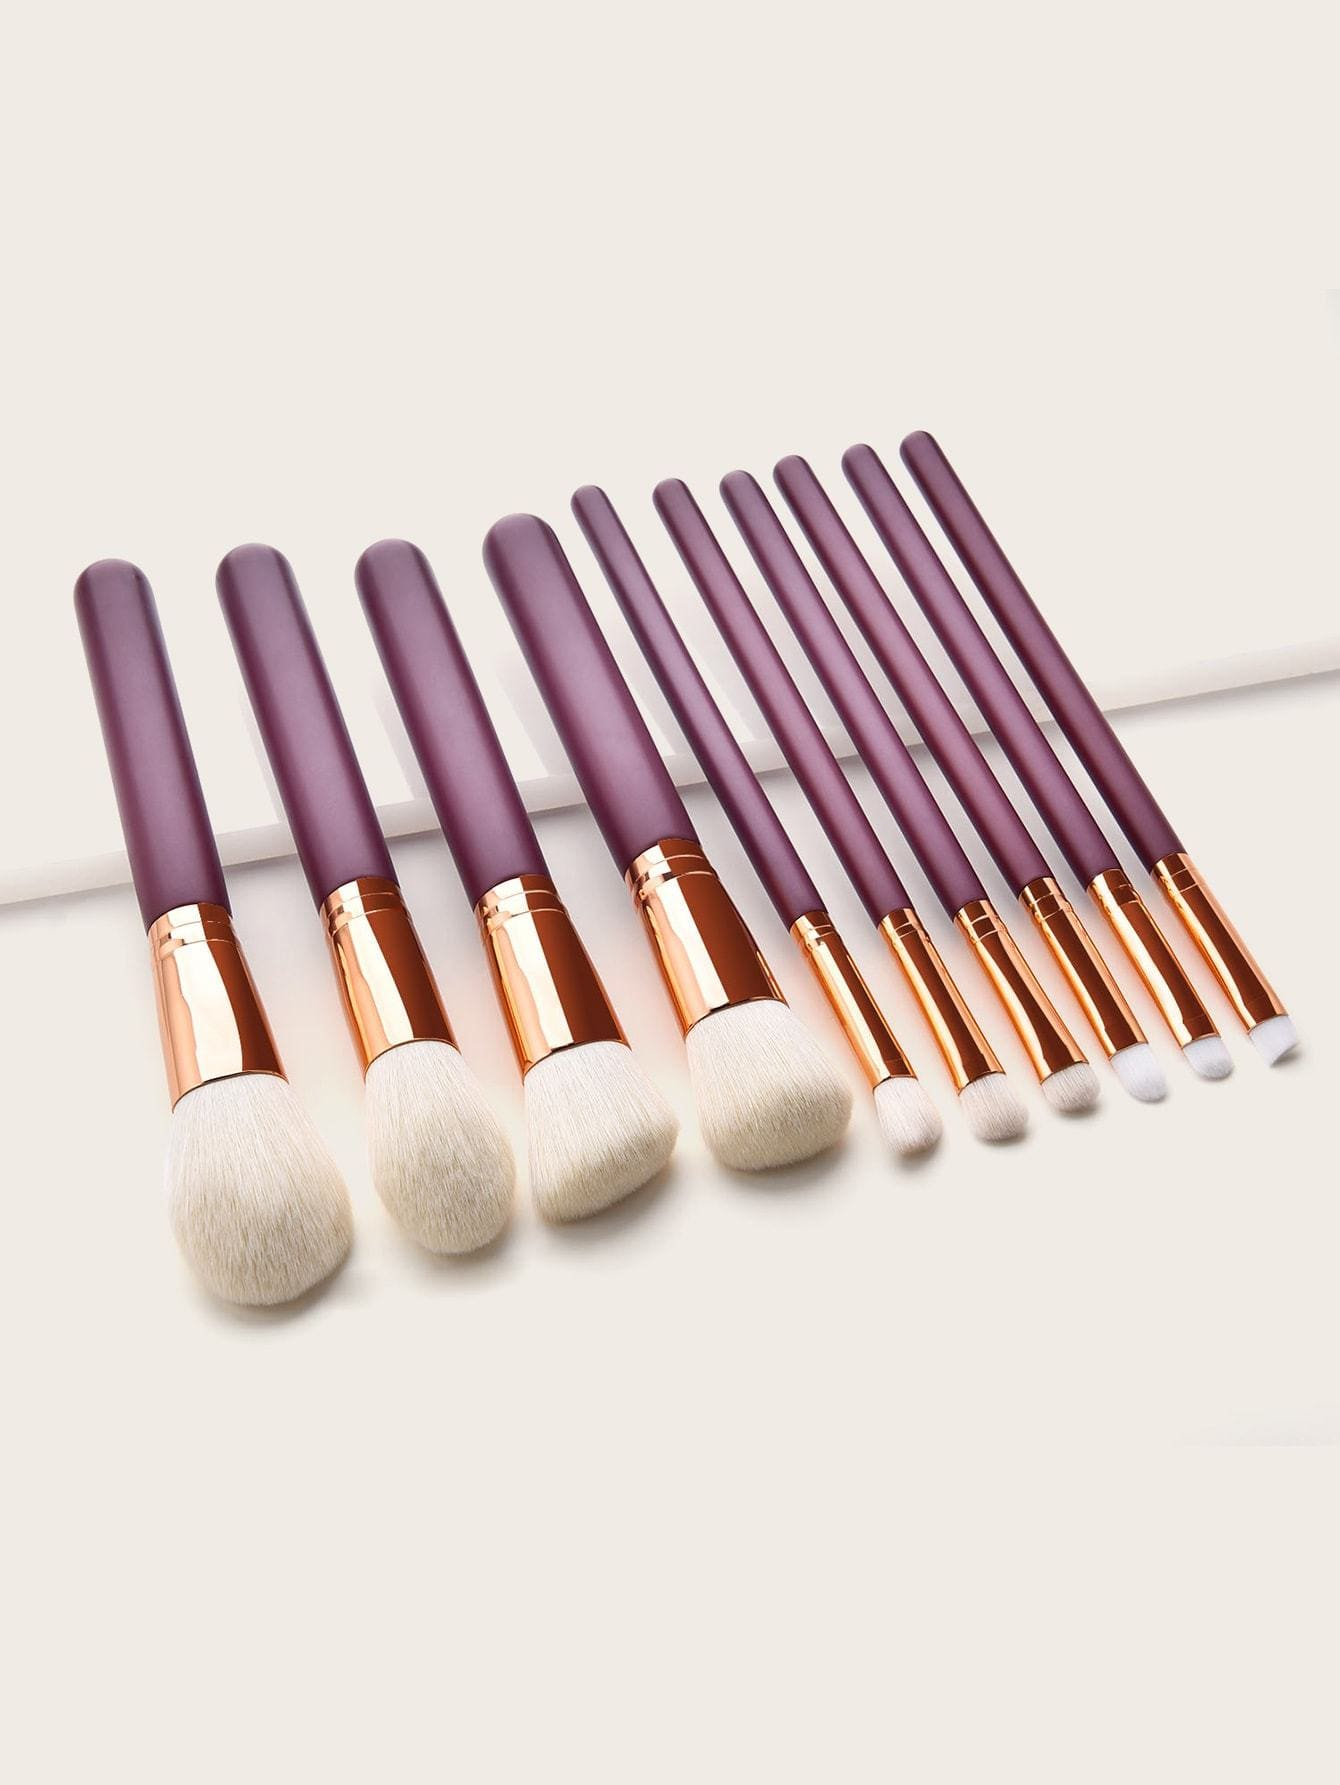 Flat & Angled Shader Brush 10pcs - Makeup Brushes